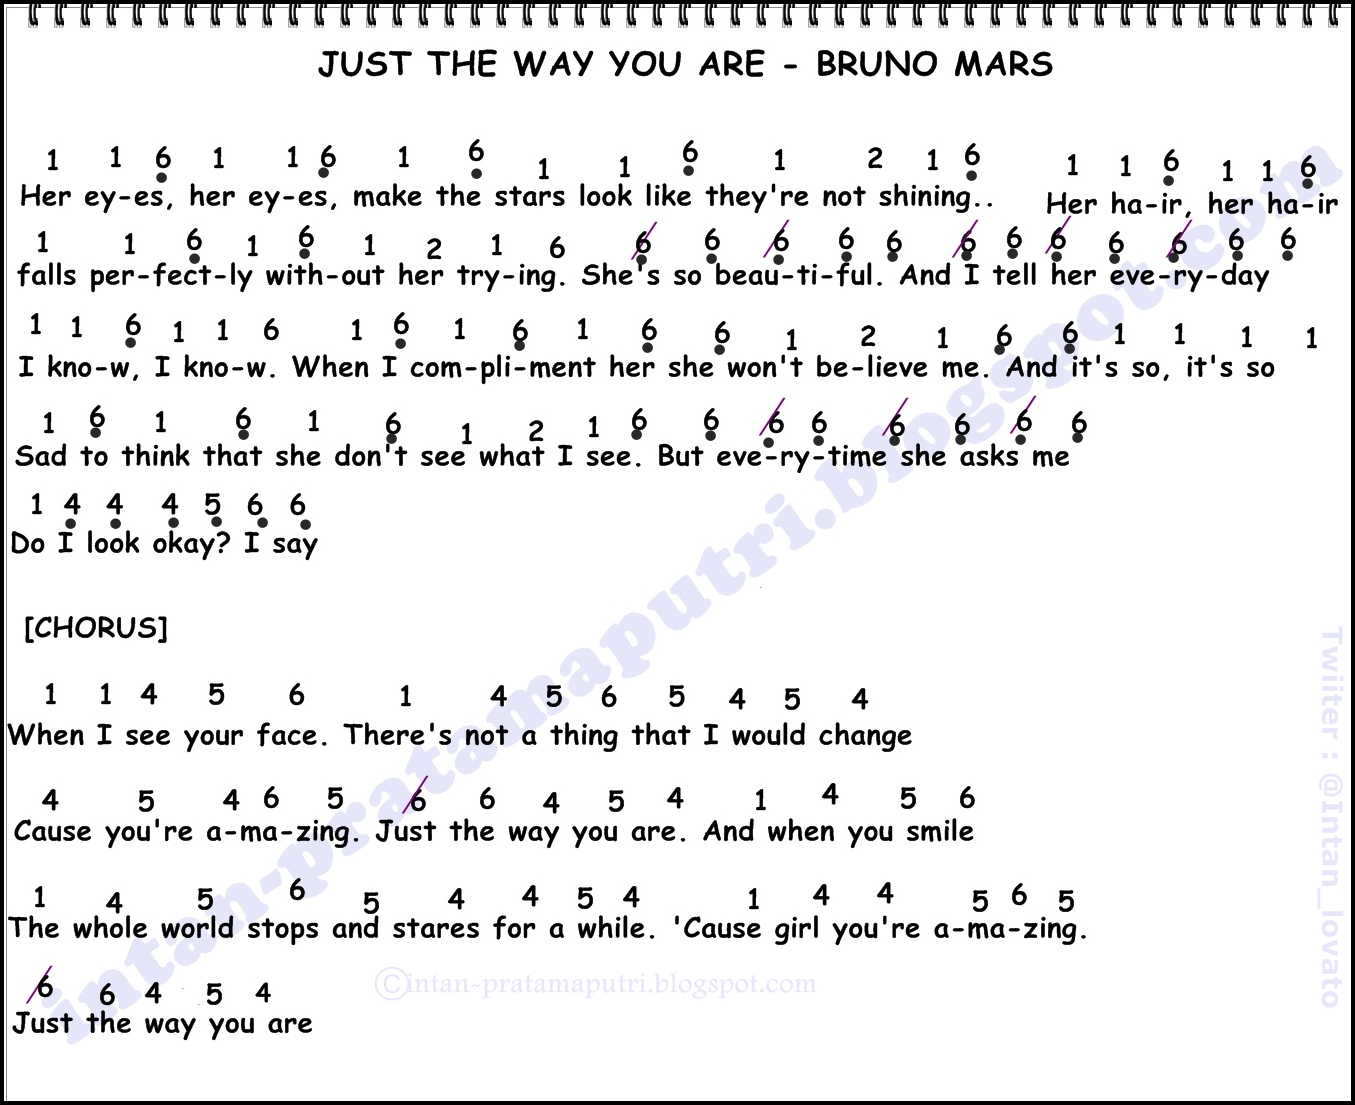 Not Angka Just The Way You Are - Bruno Mars - Intan Pratama Putri